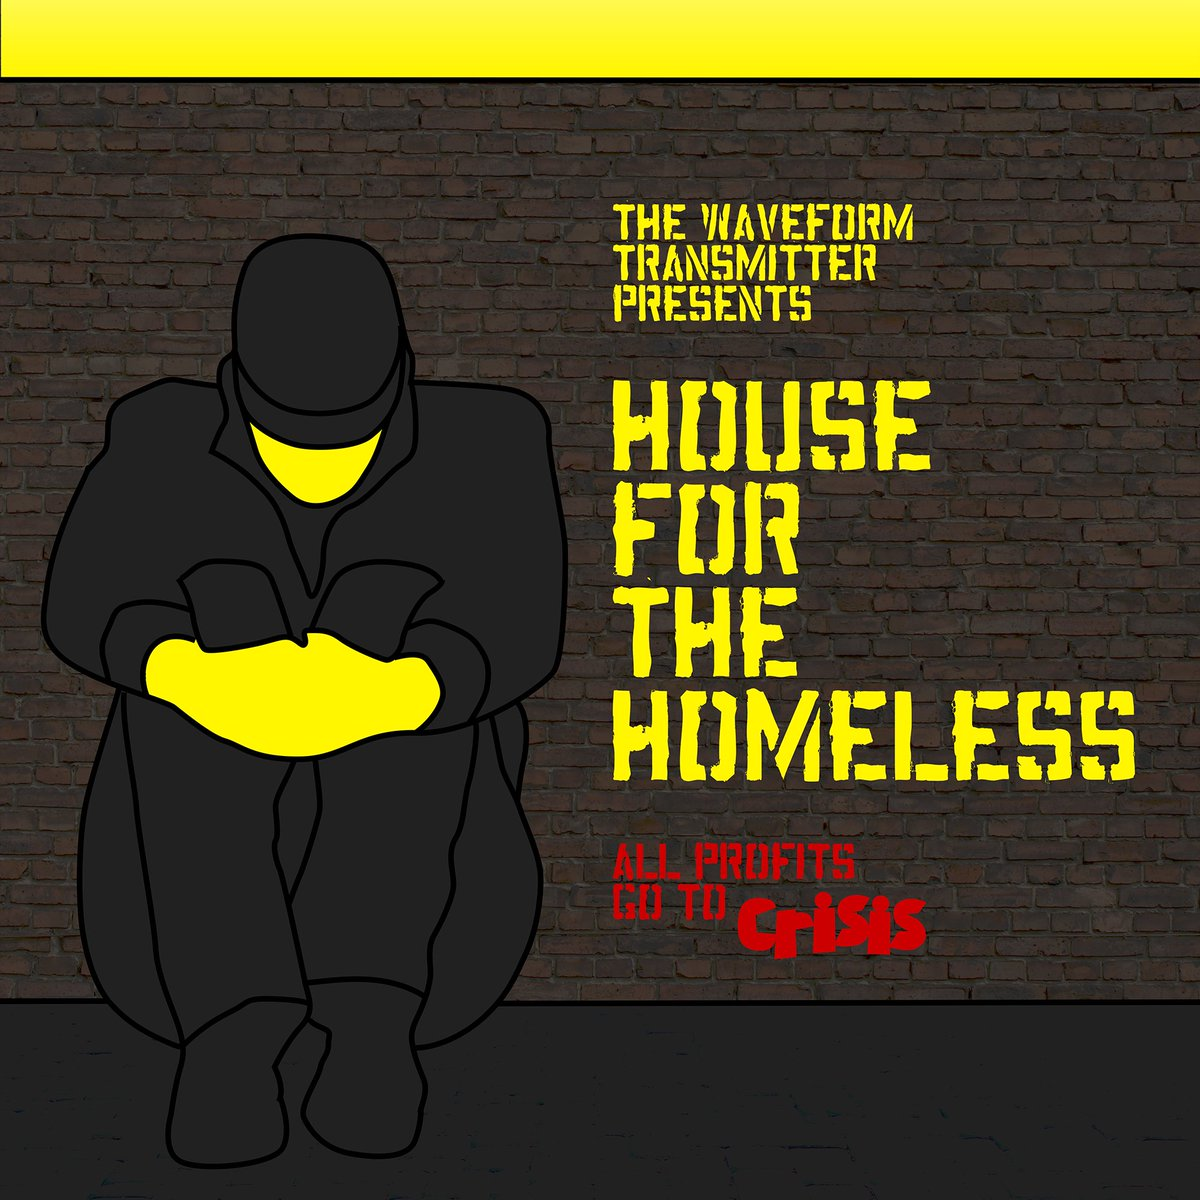 #NewMusicFriday - our #house and #techno #compilation #Album ON SALE - all #proceeds 2 #charity #endhomelessness  https:// thewaveformtransmitter.bandcamp.com/album/the-wave form-transmitter-presents-house-for-the-homeless-3 &nbsp; … <br>http://pic.twitter.com/uygZVq1Y2U